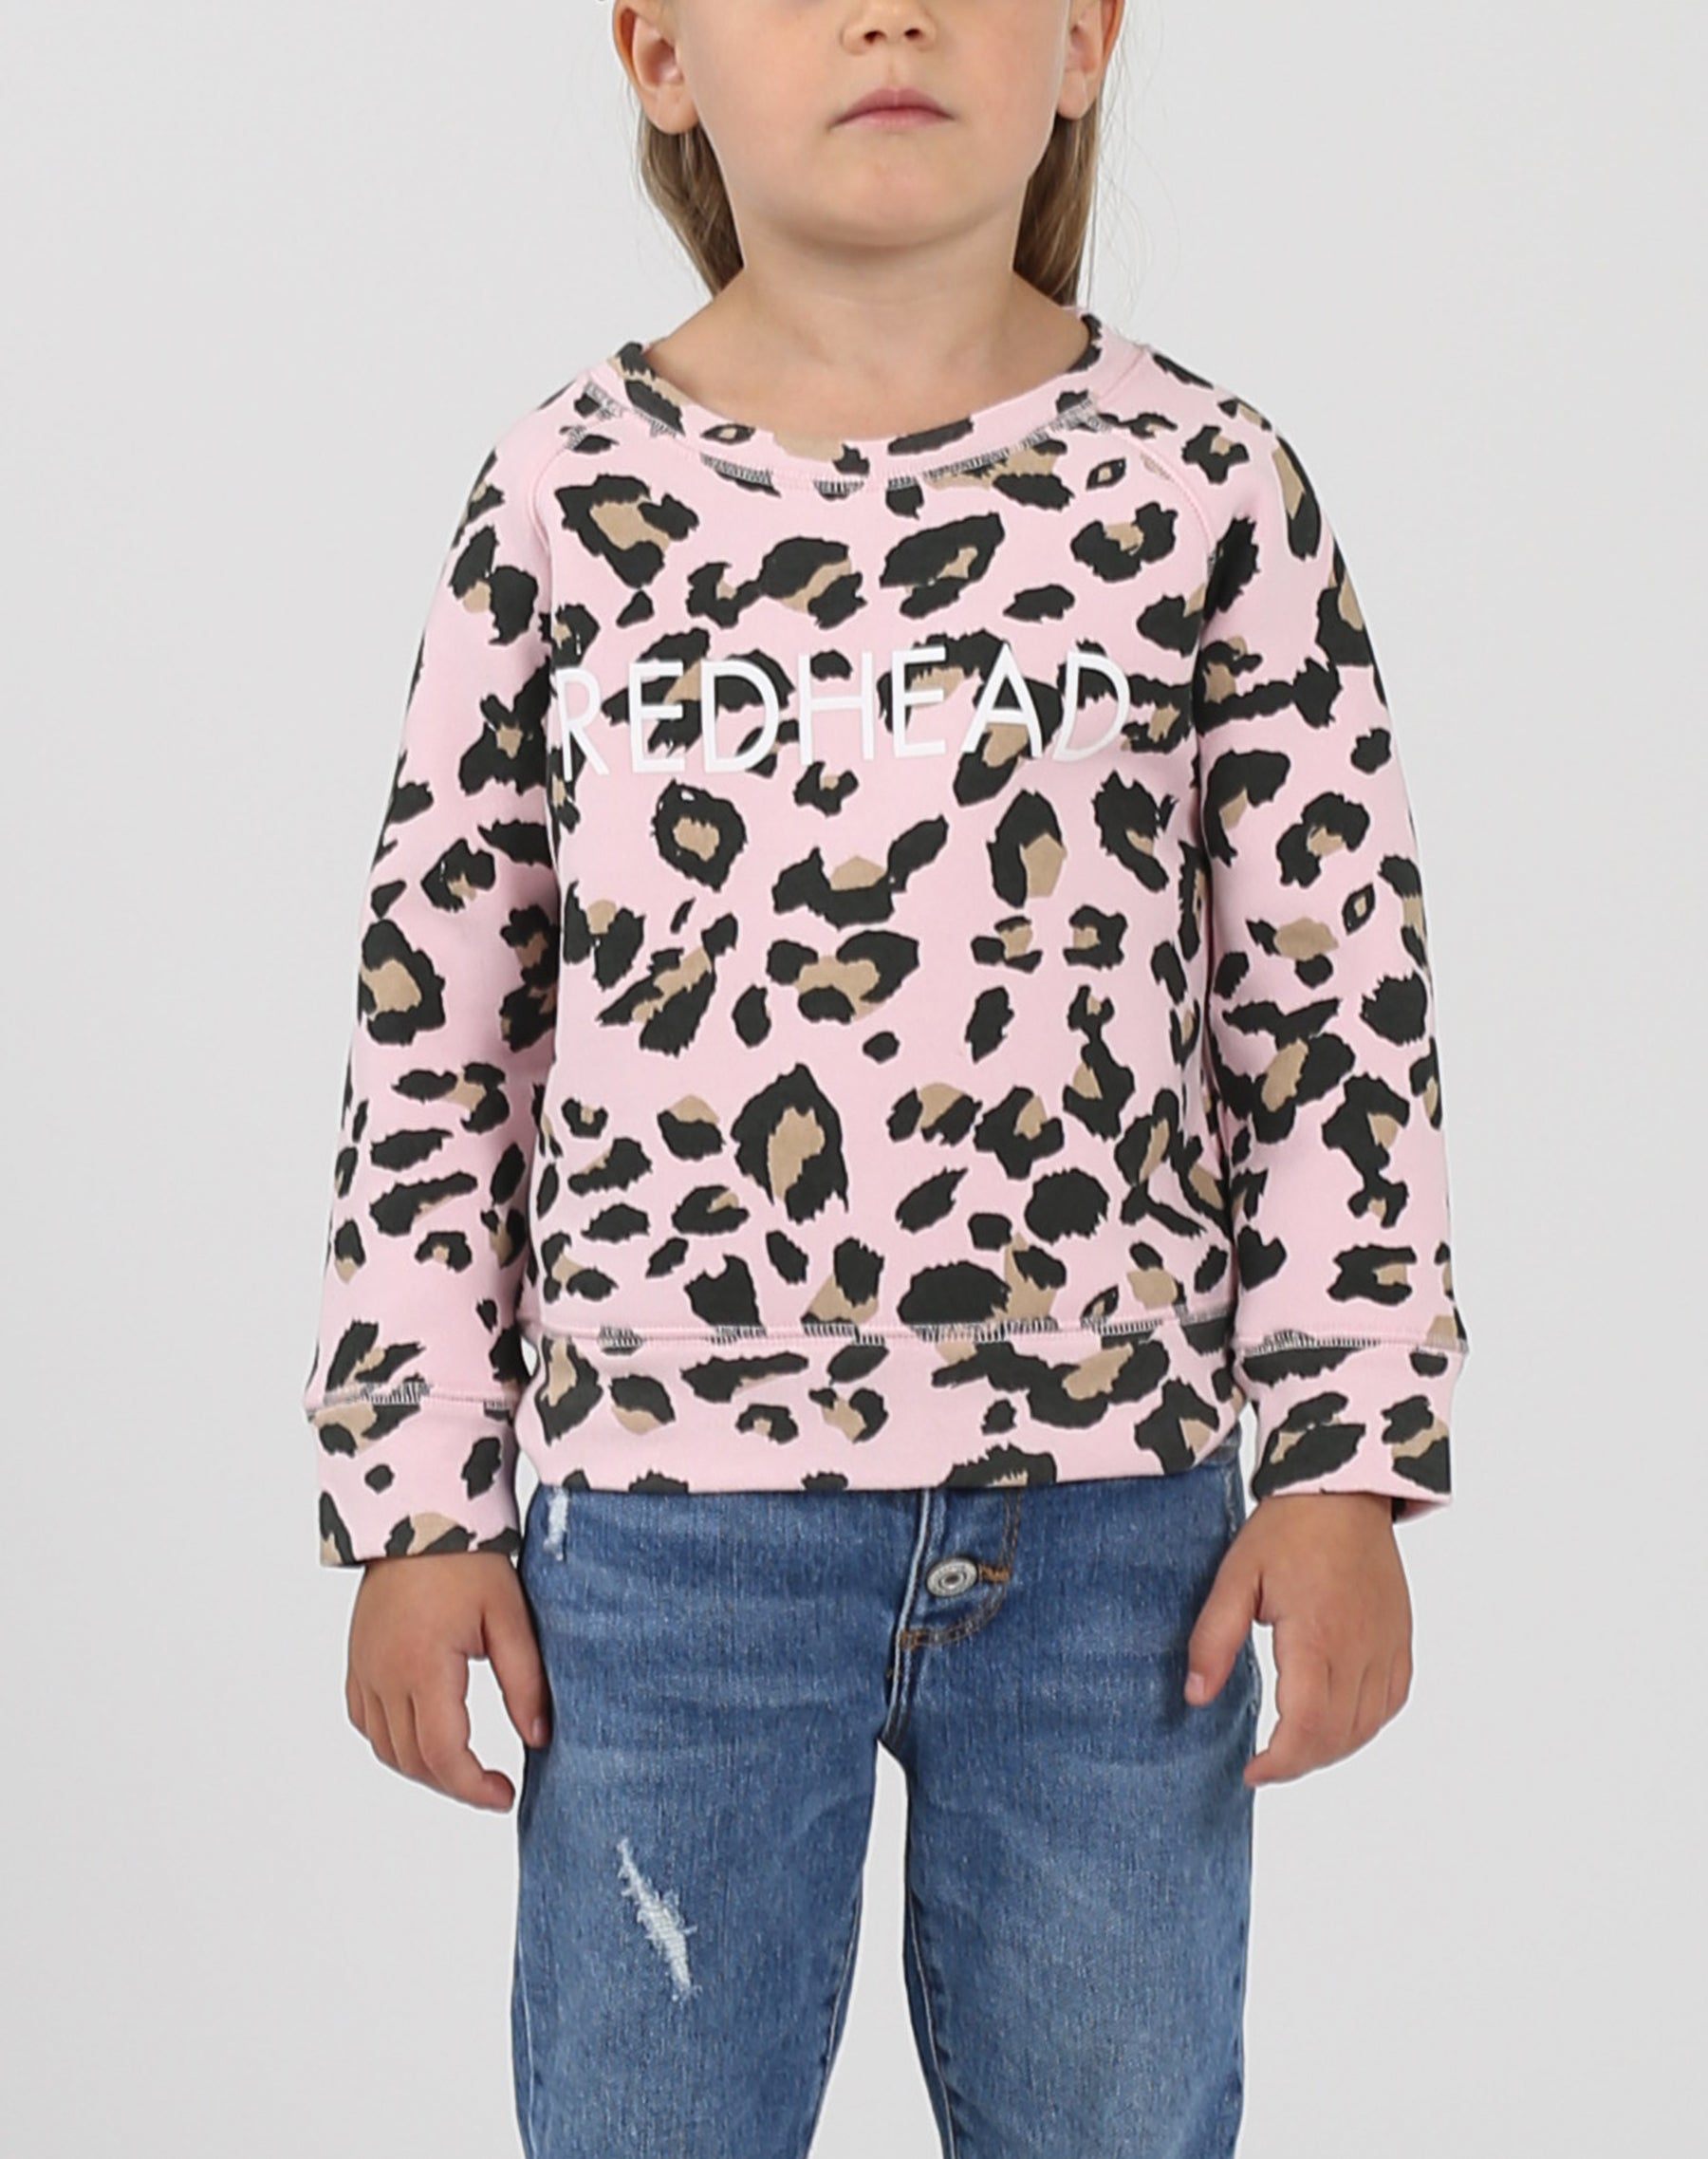 This is a photo of a model wearing the Little Babes Redhead Crew Neck Sweatshirt in Pink Leopard by Brunette The Label.